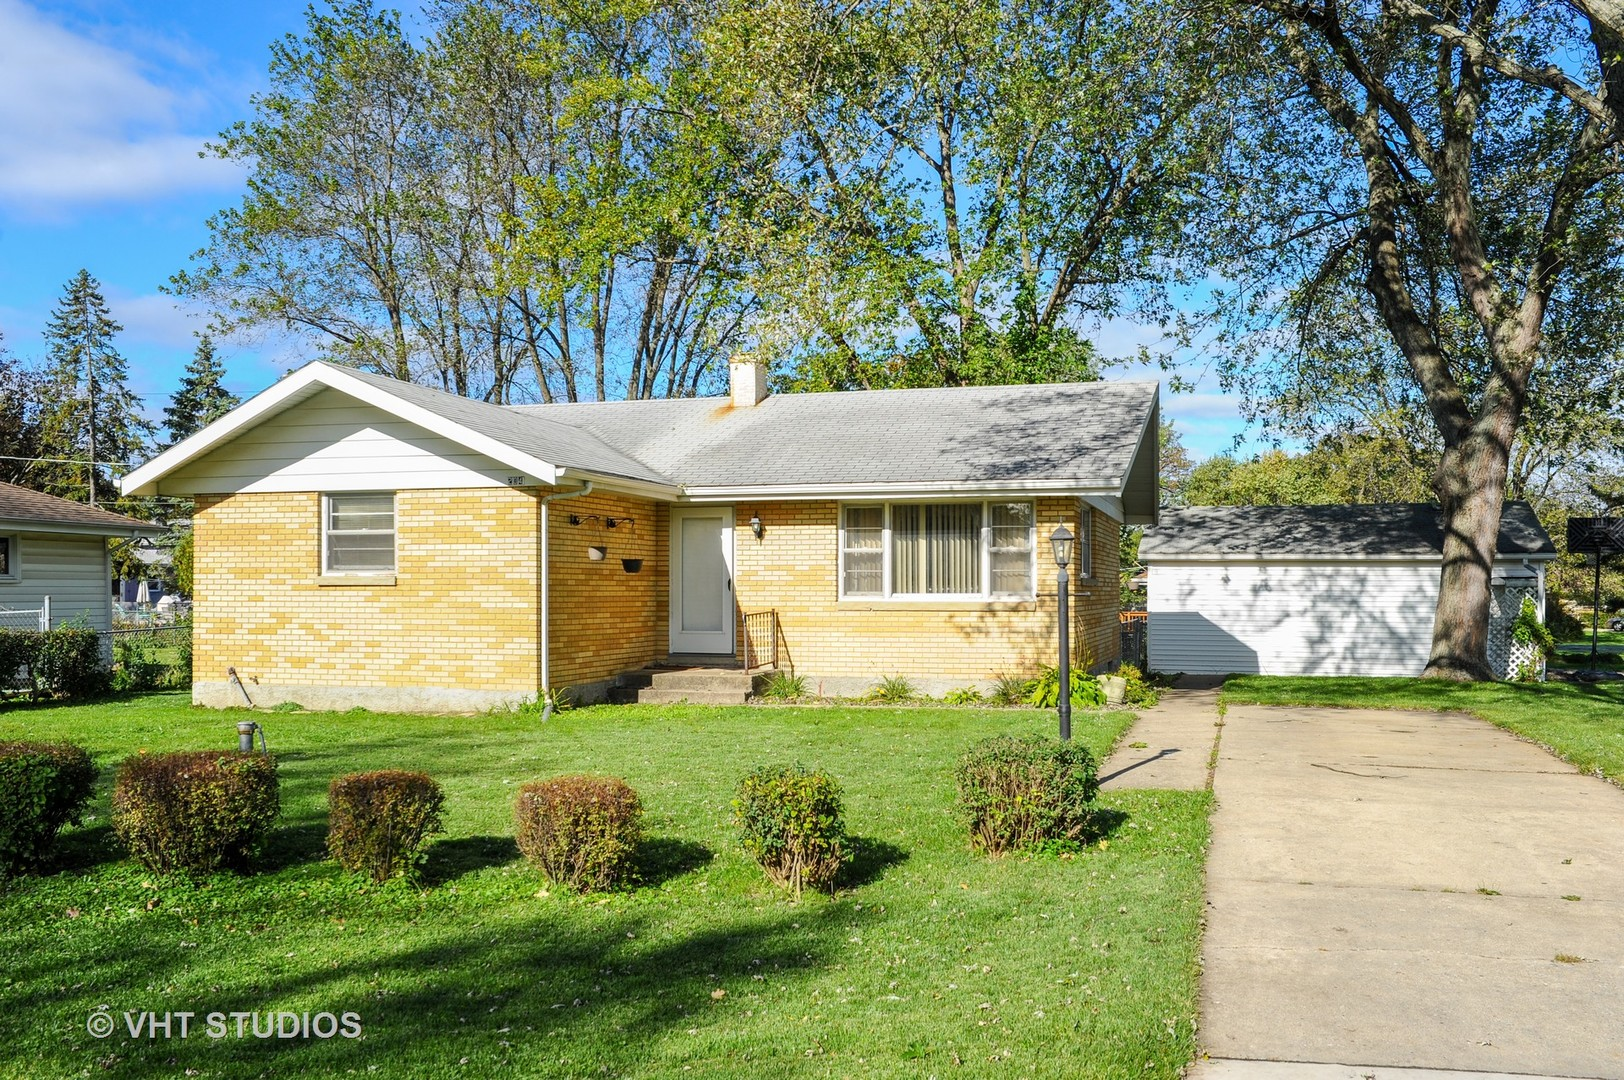 204 Countryside Lane, Lindenhurst, Illinois 60046